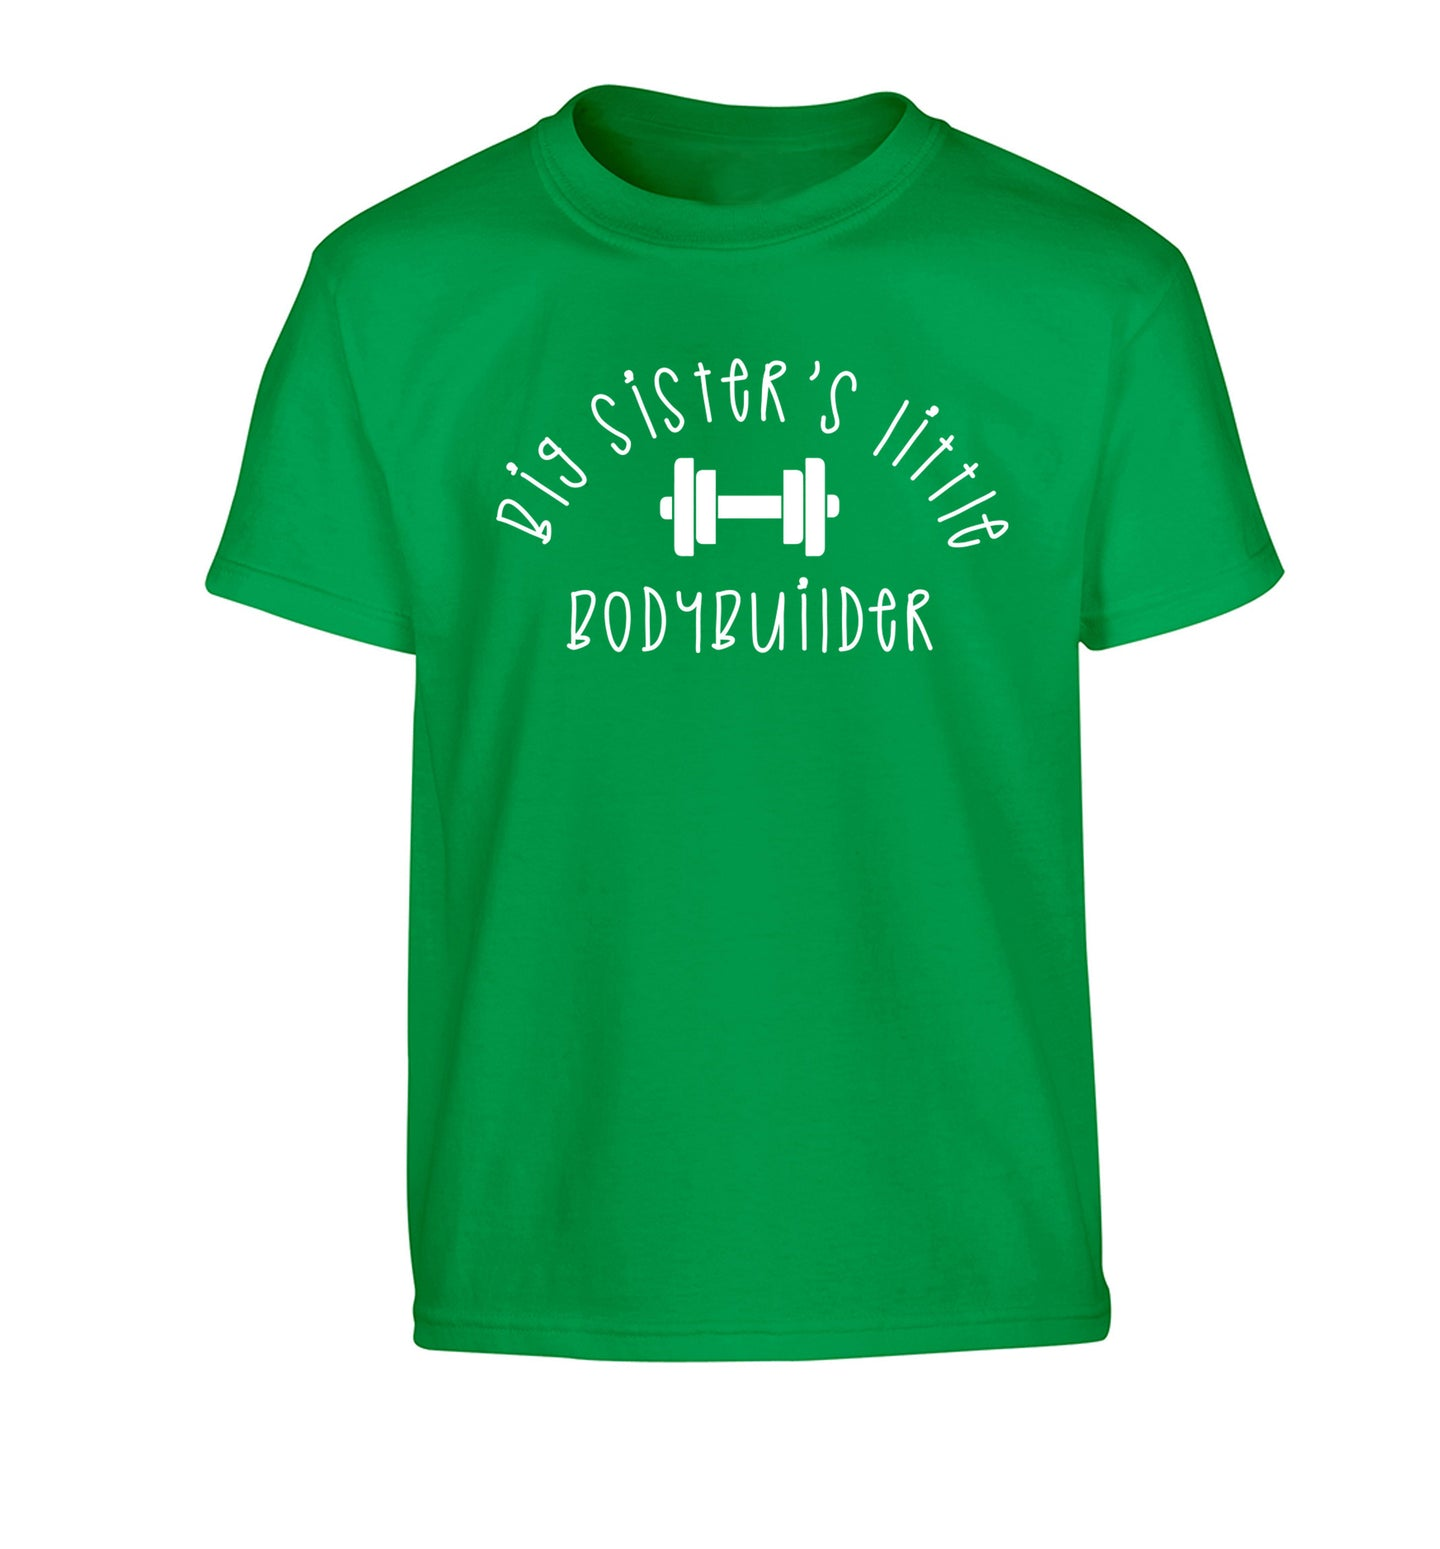 Big sister's little bodybuilder Children's green Tshirt 12-14 Years